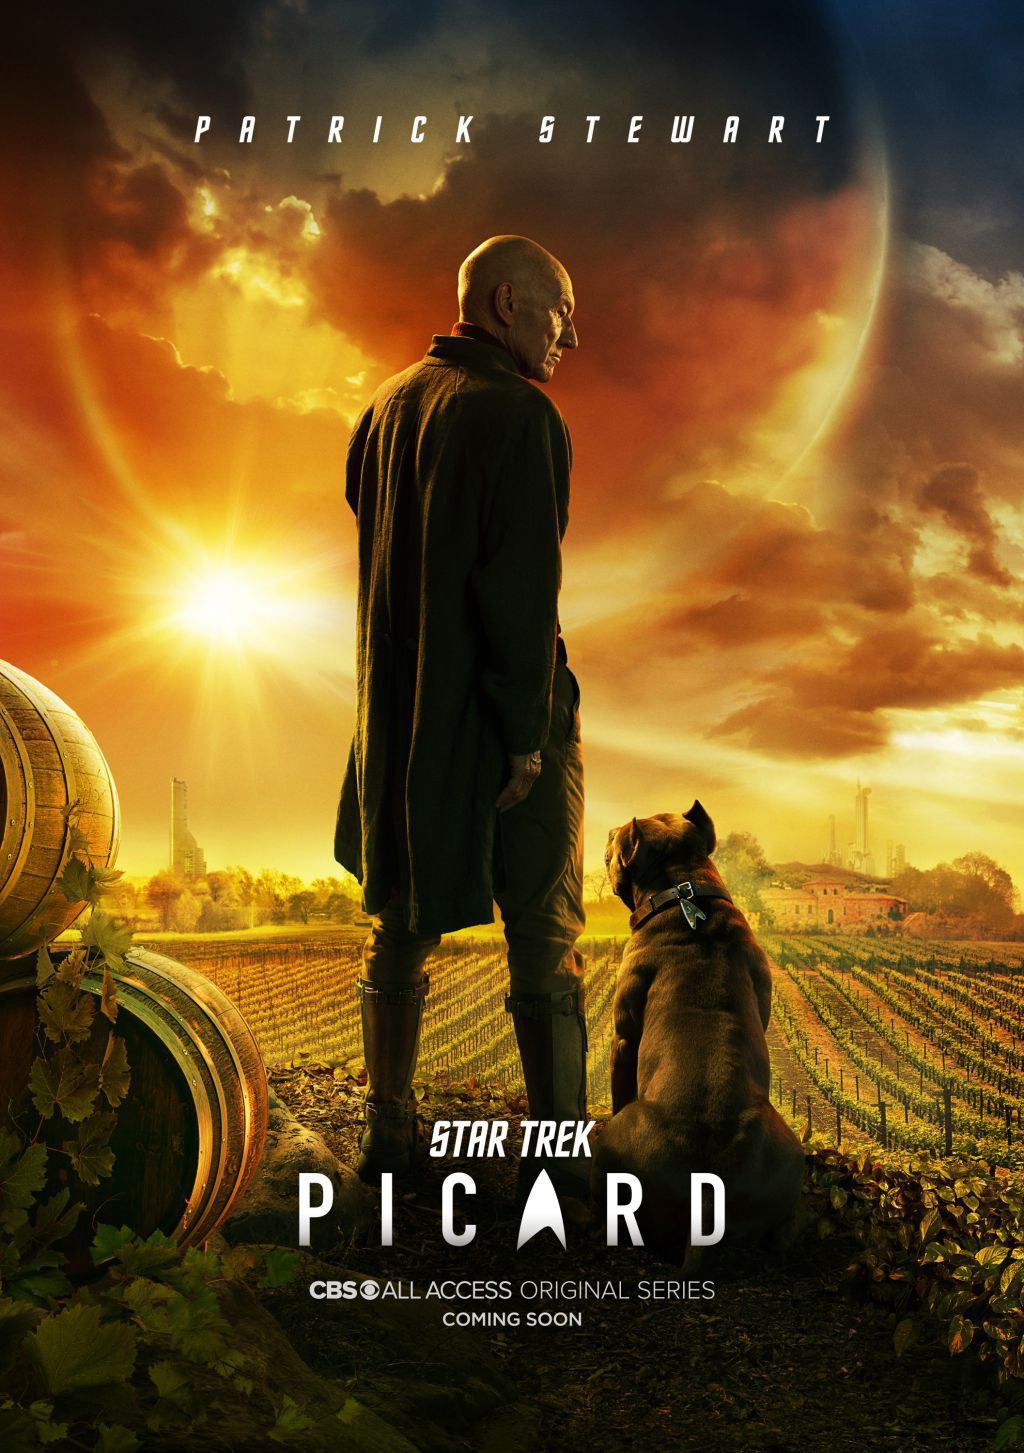 Star Trek : Picard - Série (2020) streaming VF gratuit complet